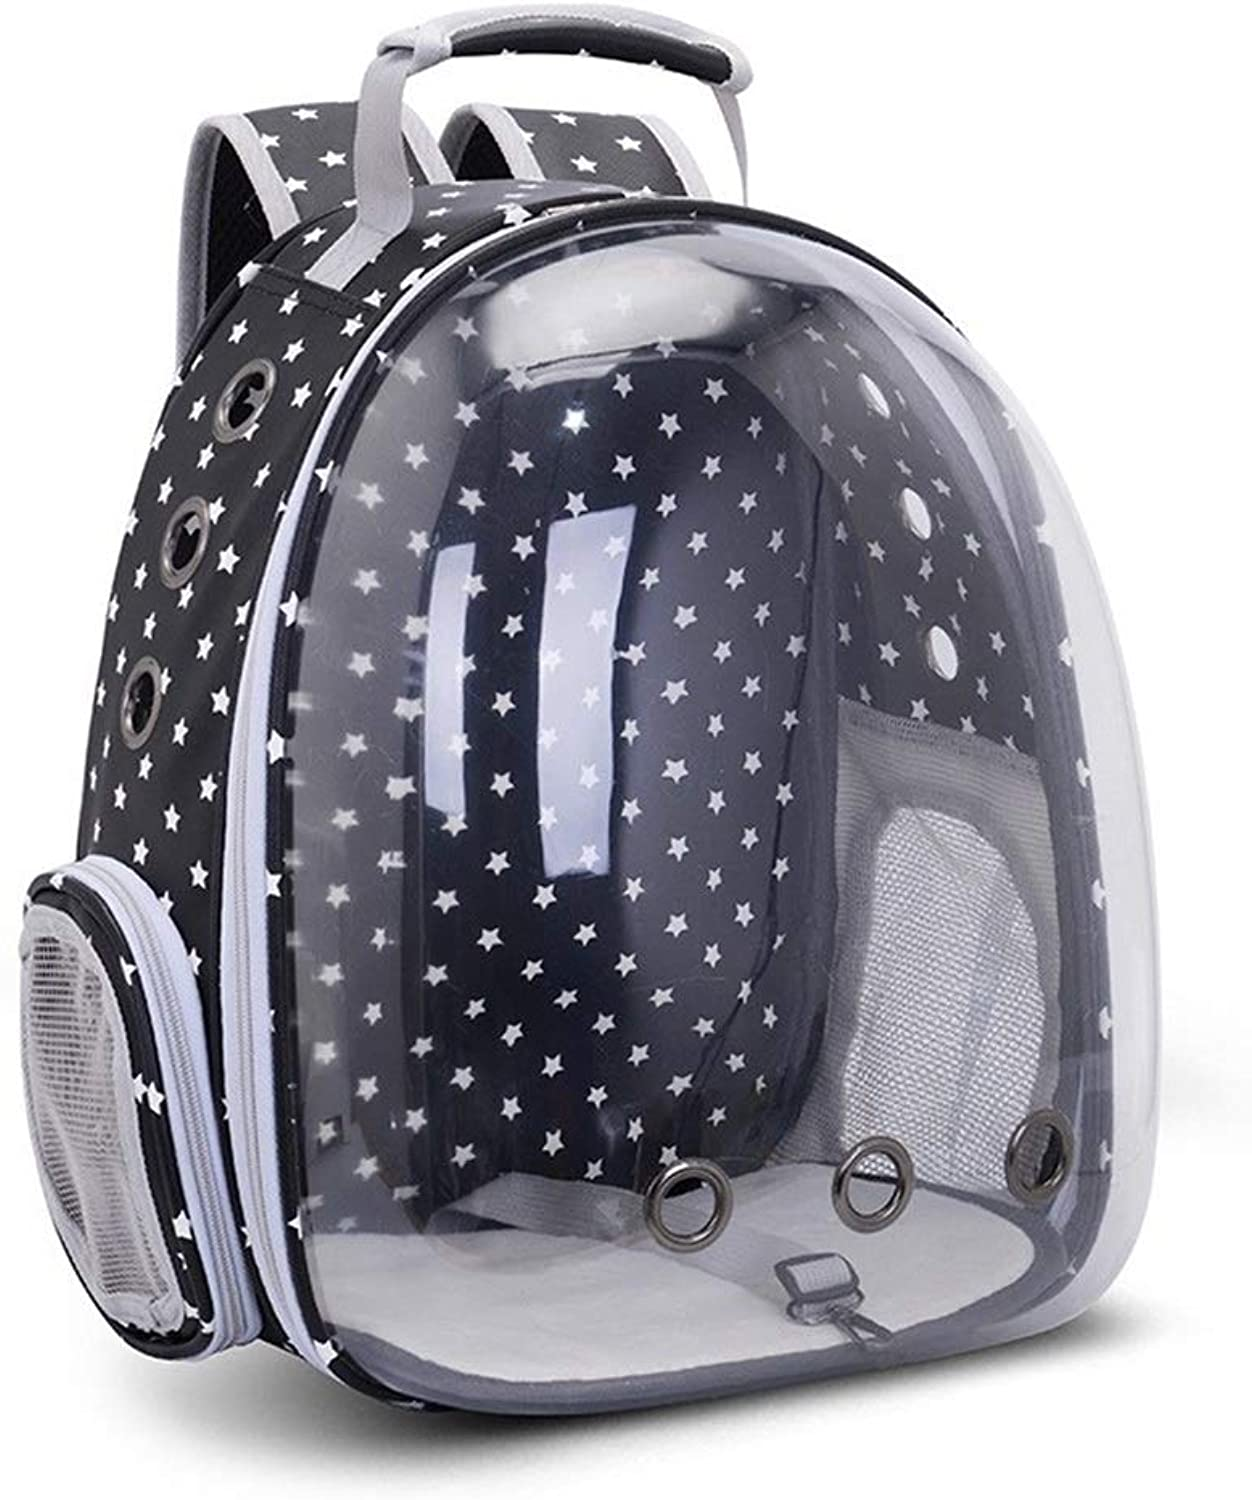 BigShiAUSPICIOUS New Transparent Pet Space Bag Out Portable Dog Bag Cat Backpack (color   Black Stars)